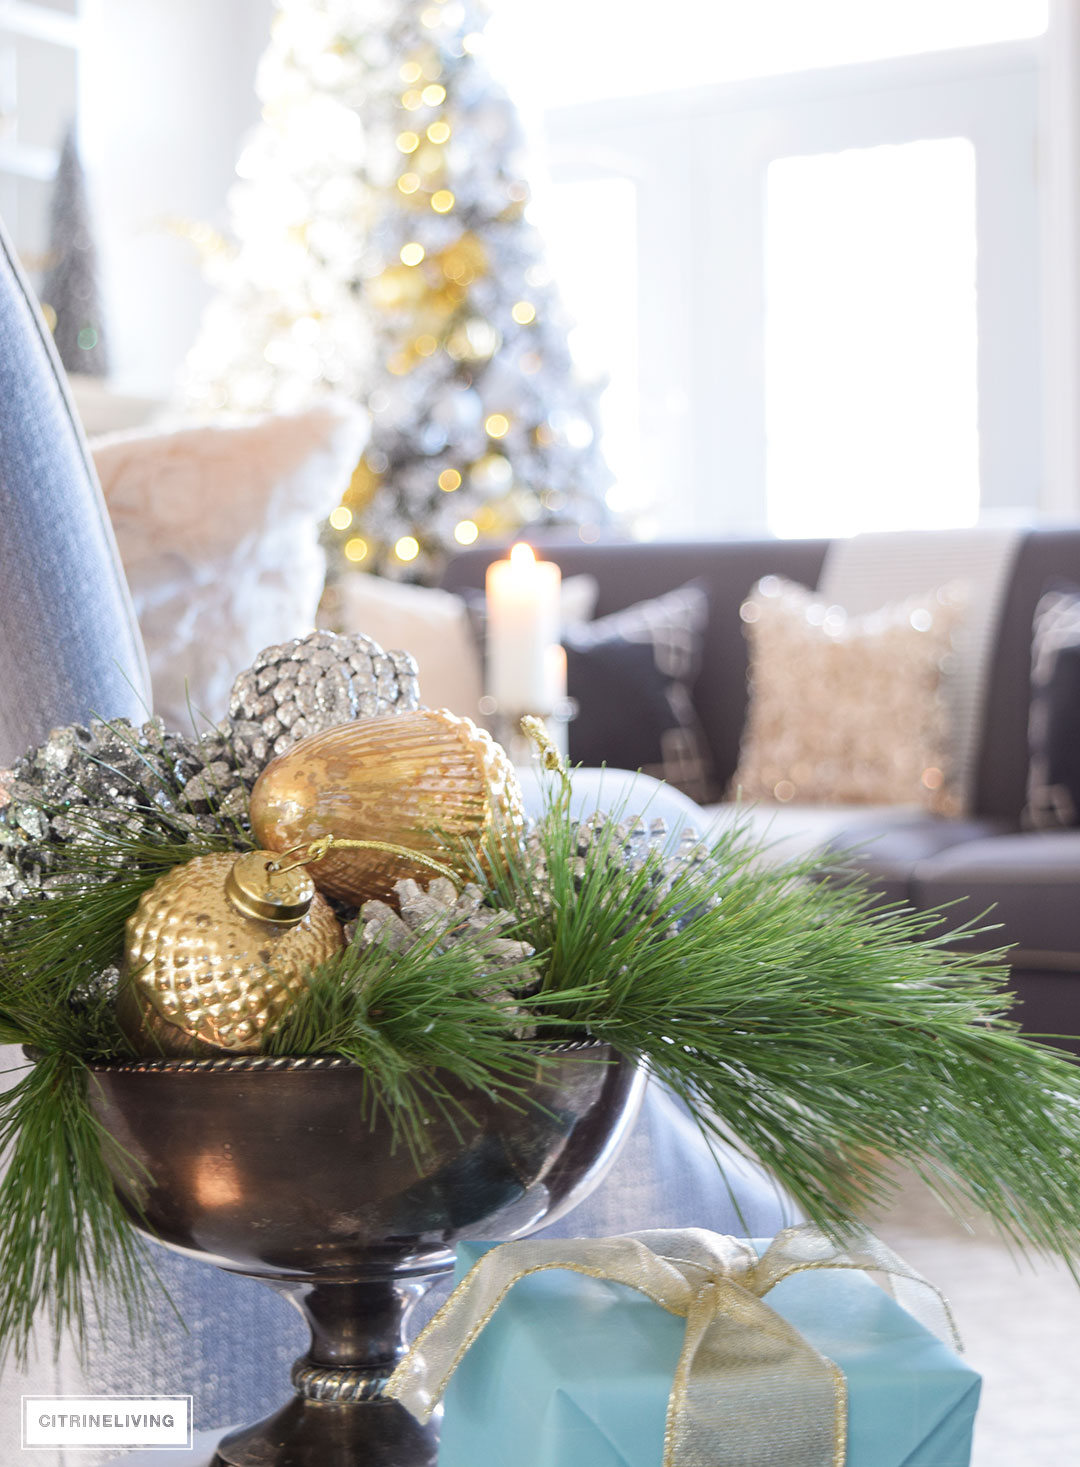 Christmas Home Tour - mixed metallics and fresh greenery create a chic Holiday theme